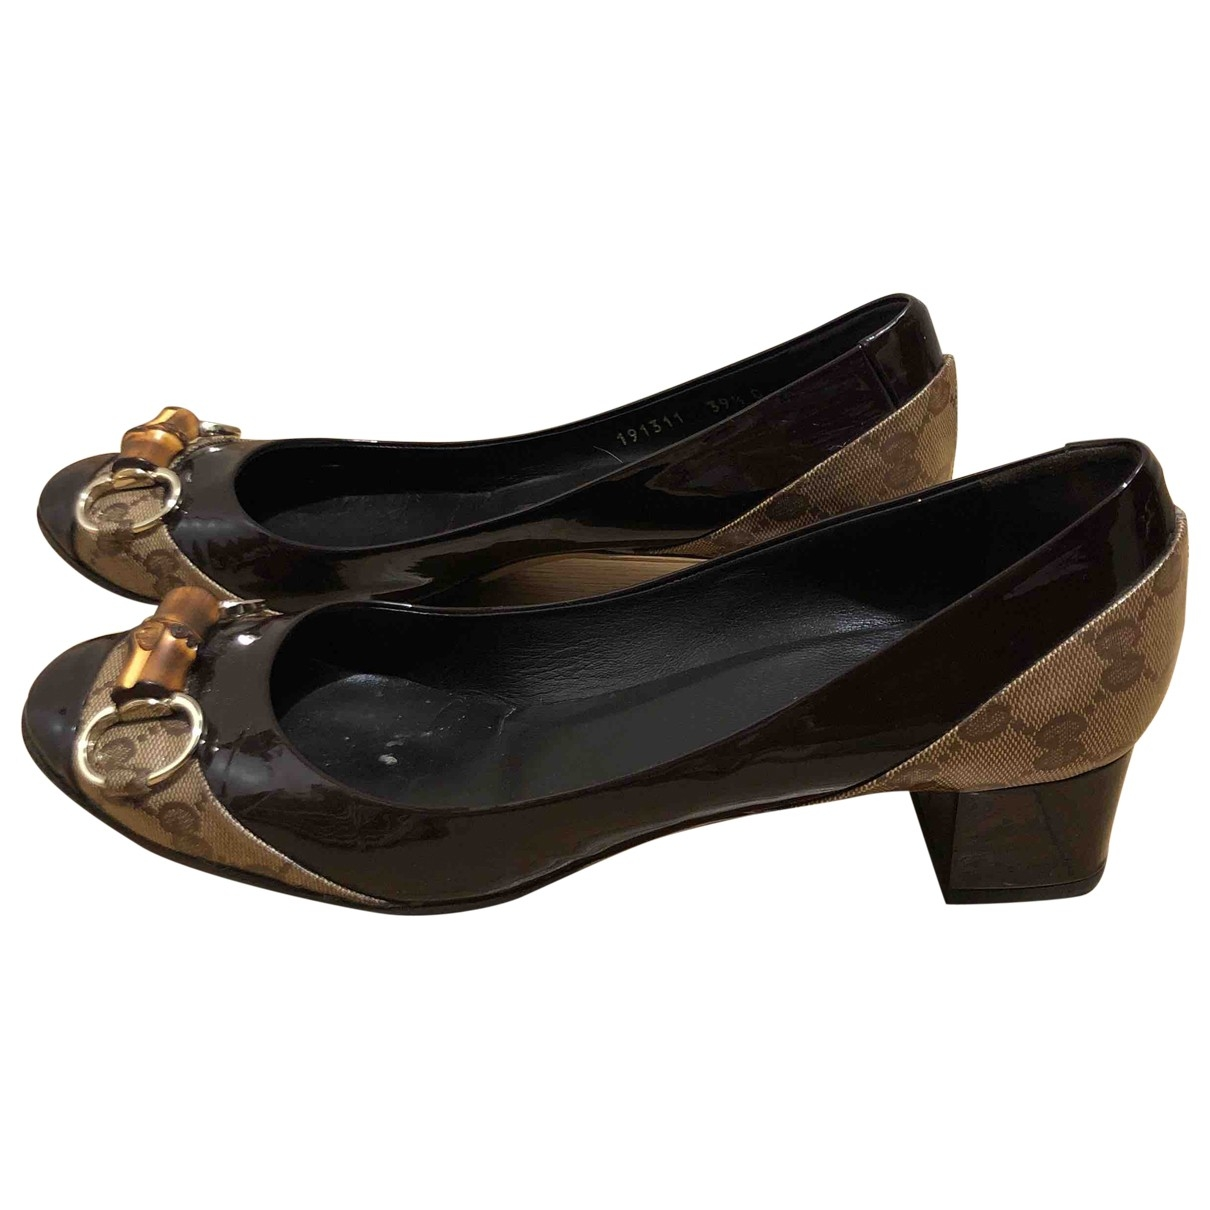 Gucci \N Brown Patent leather Flats for Women 39.5 EU